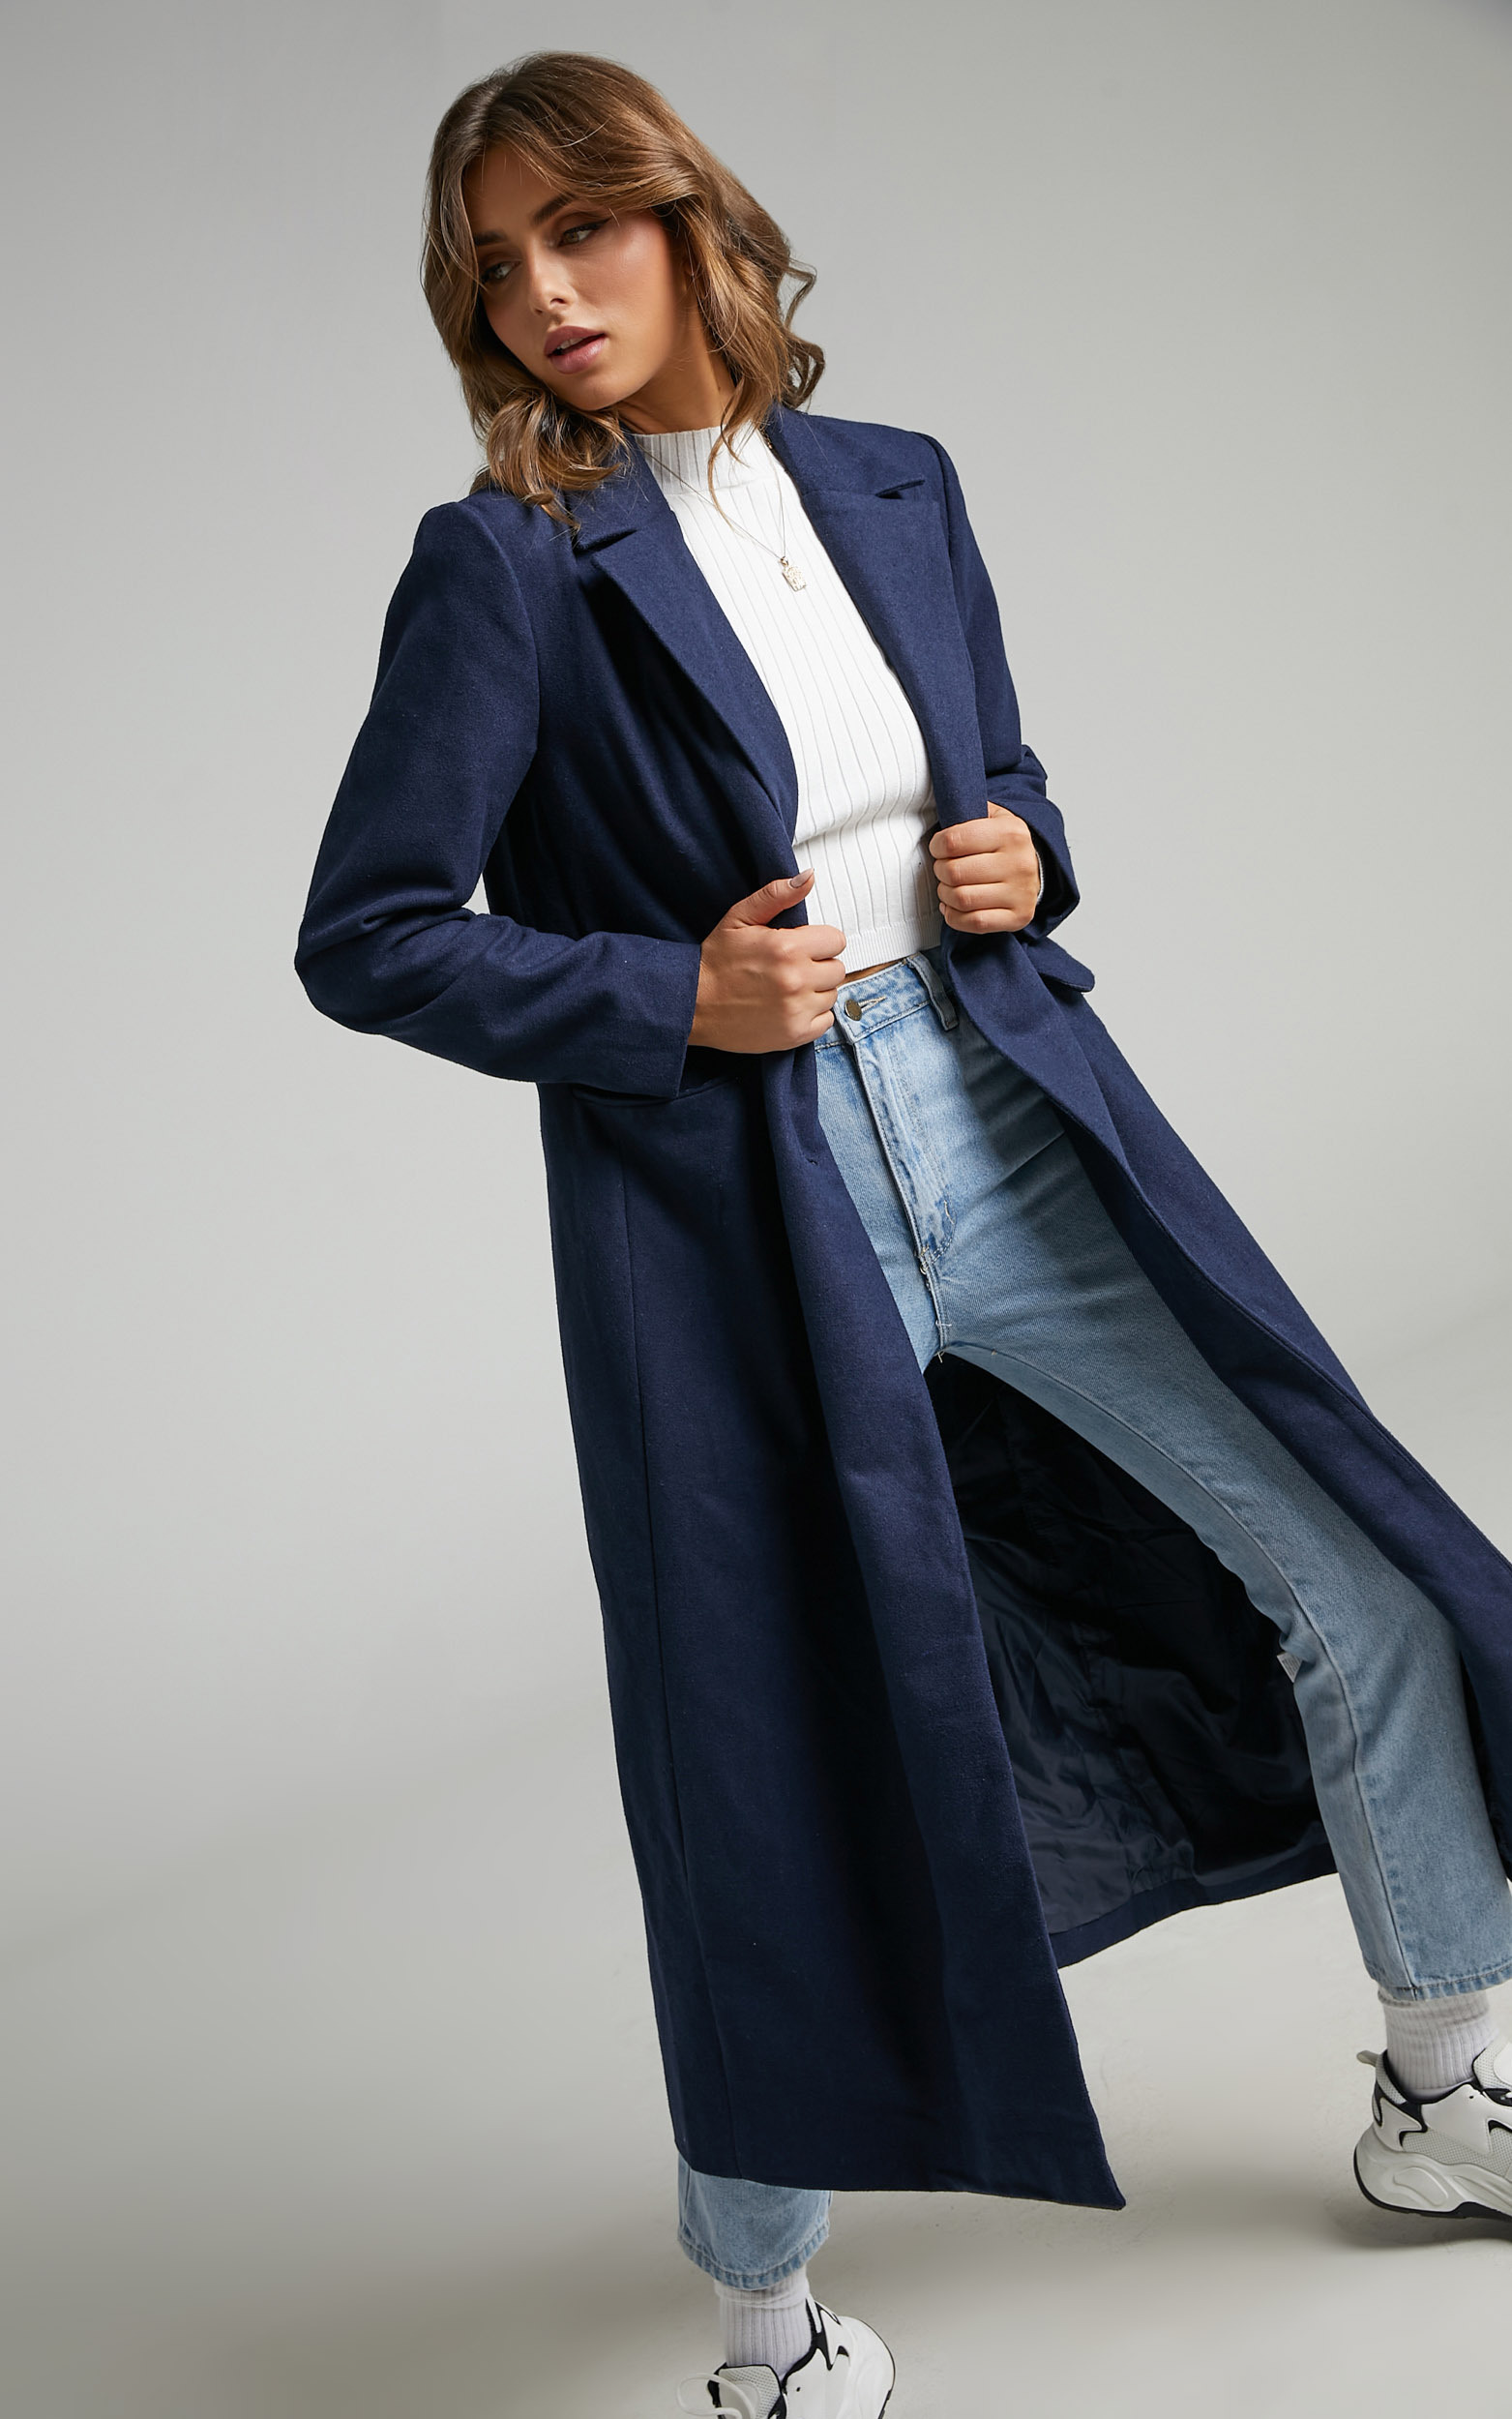 Lizah Button Up Trench Coat in Navy - 06, NVY1, hi-res image number null